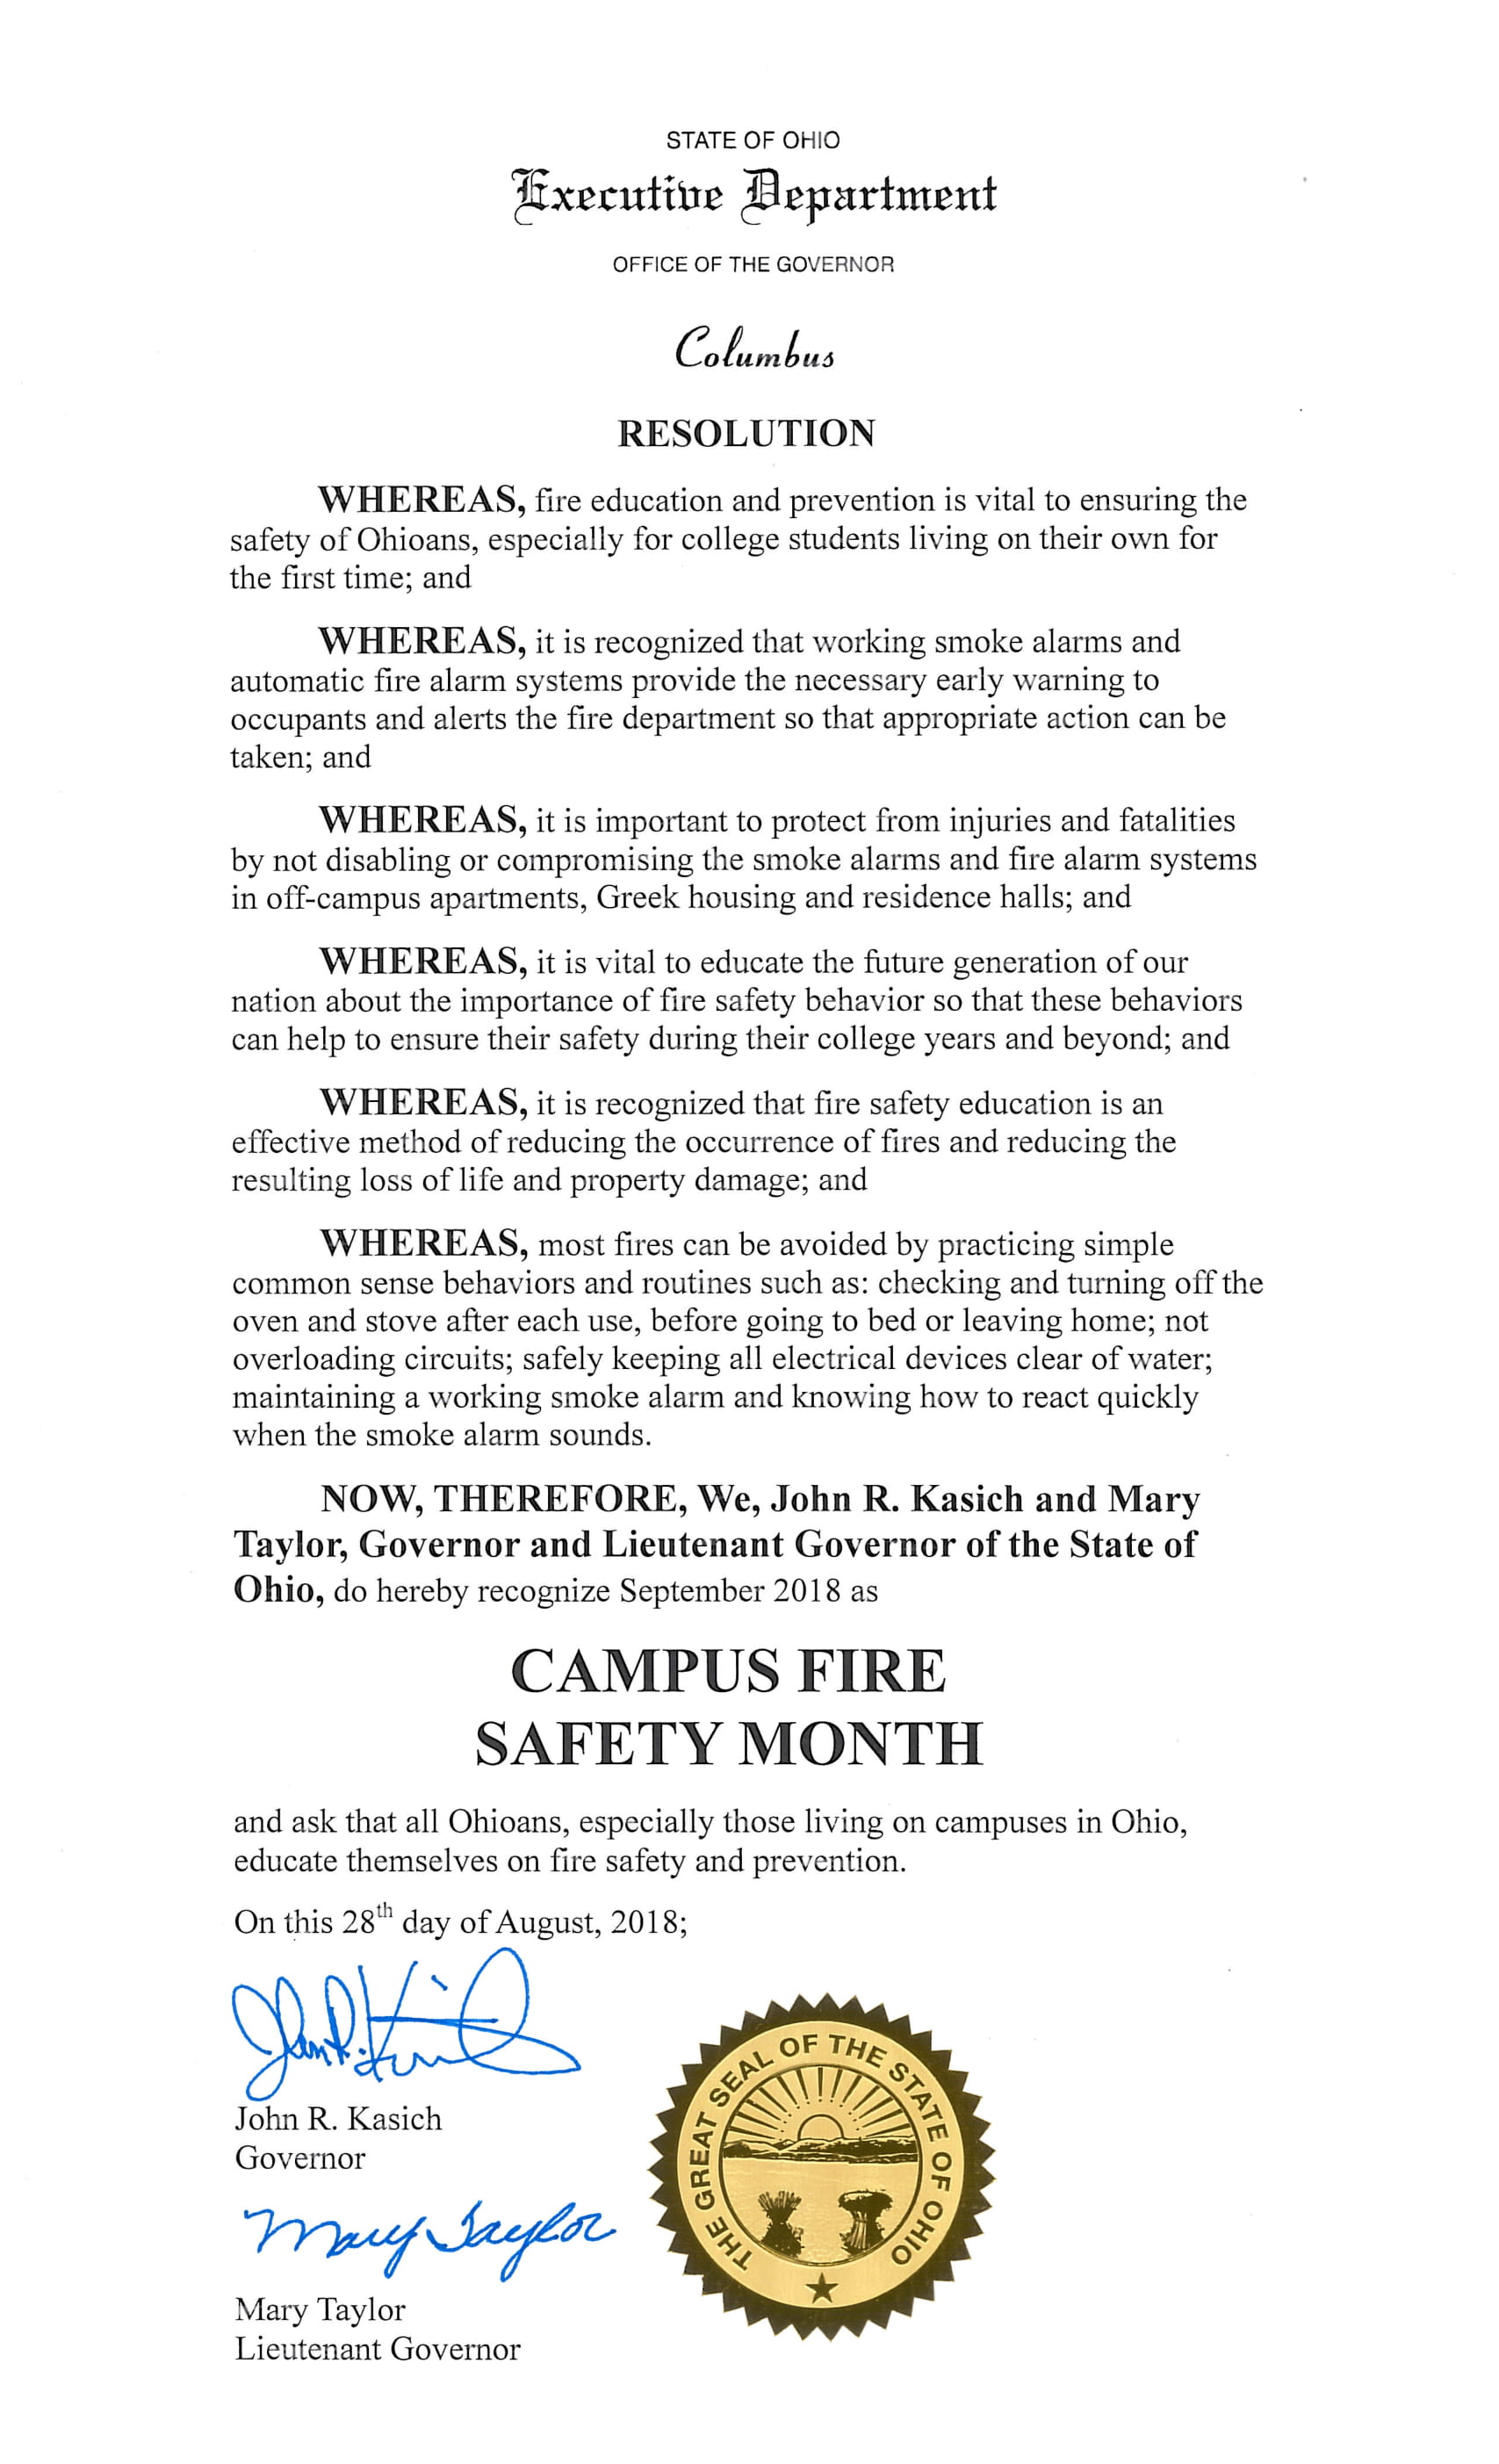 Fire Prevention Essay 2014 Fire Safety Essays 2019 01 06